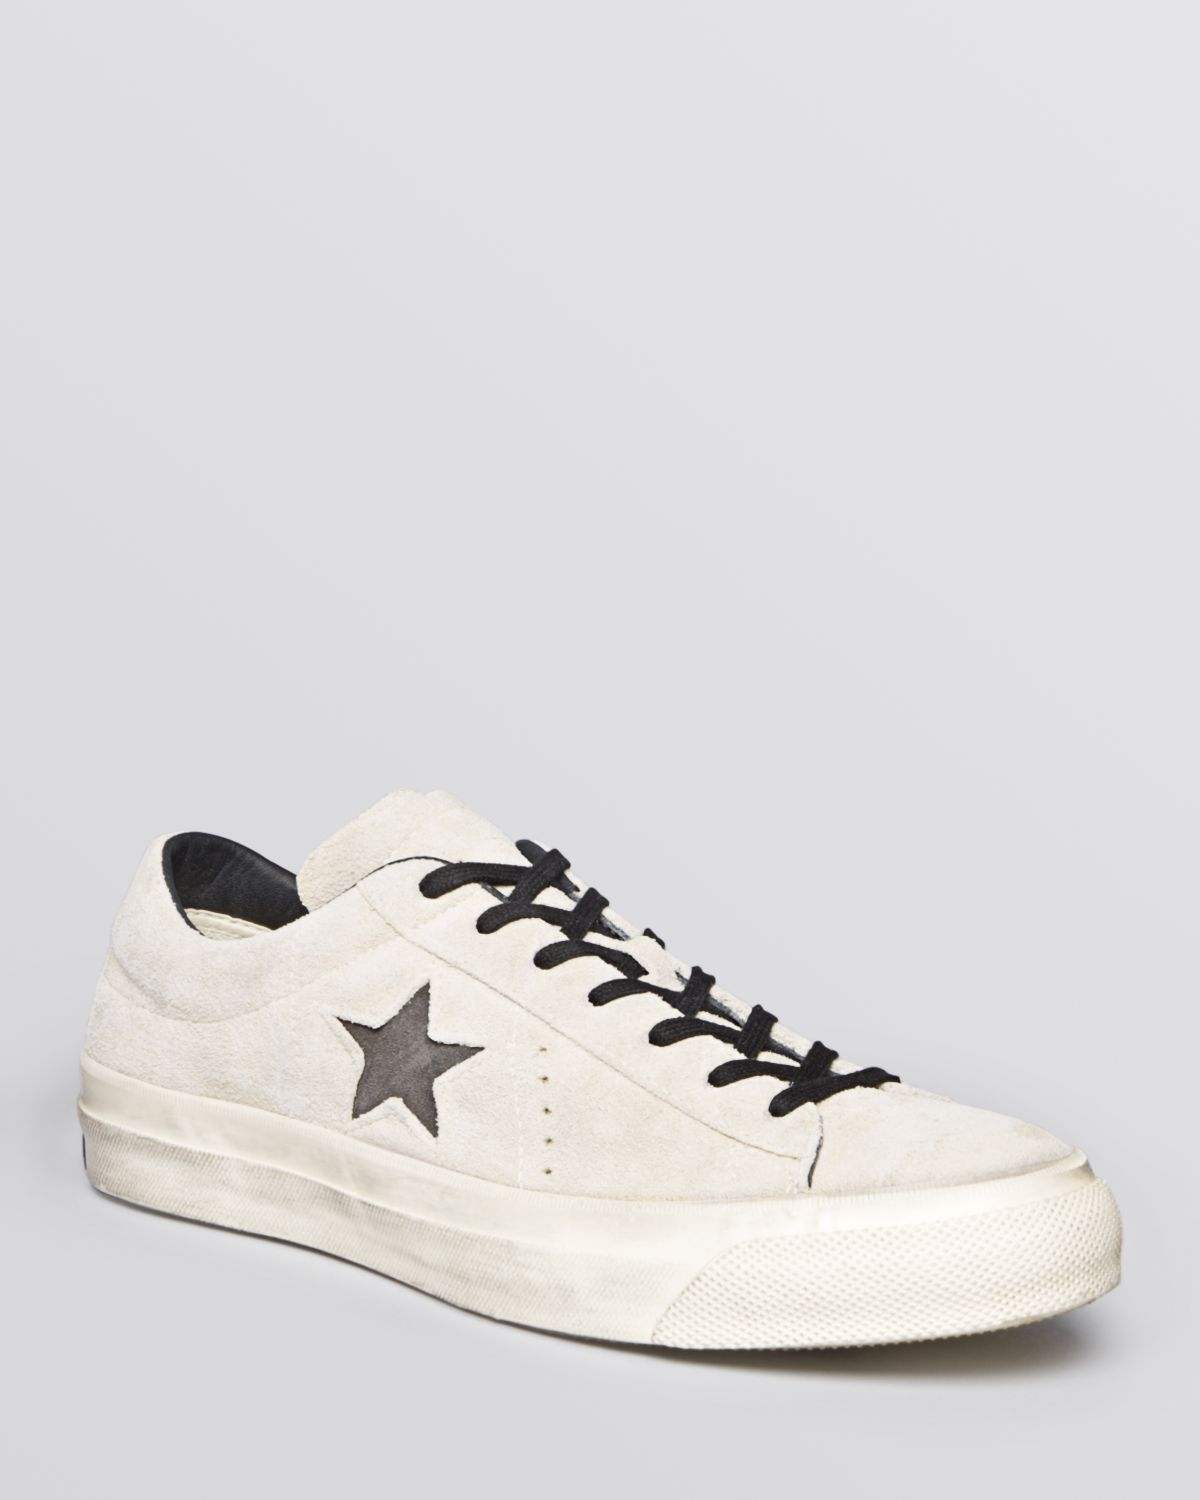 572798b01469 Lyst - Converse By John Varvatos One Star Brushed Suede Sneakers in ...